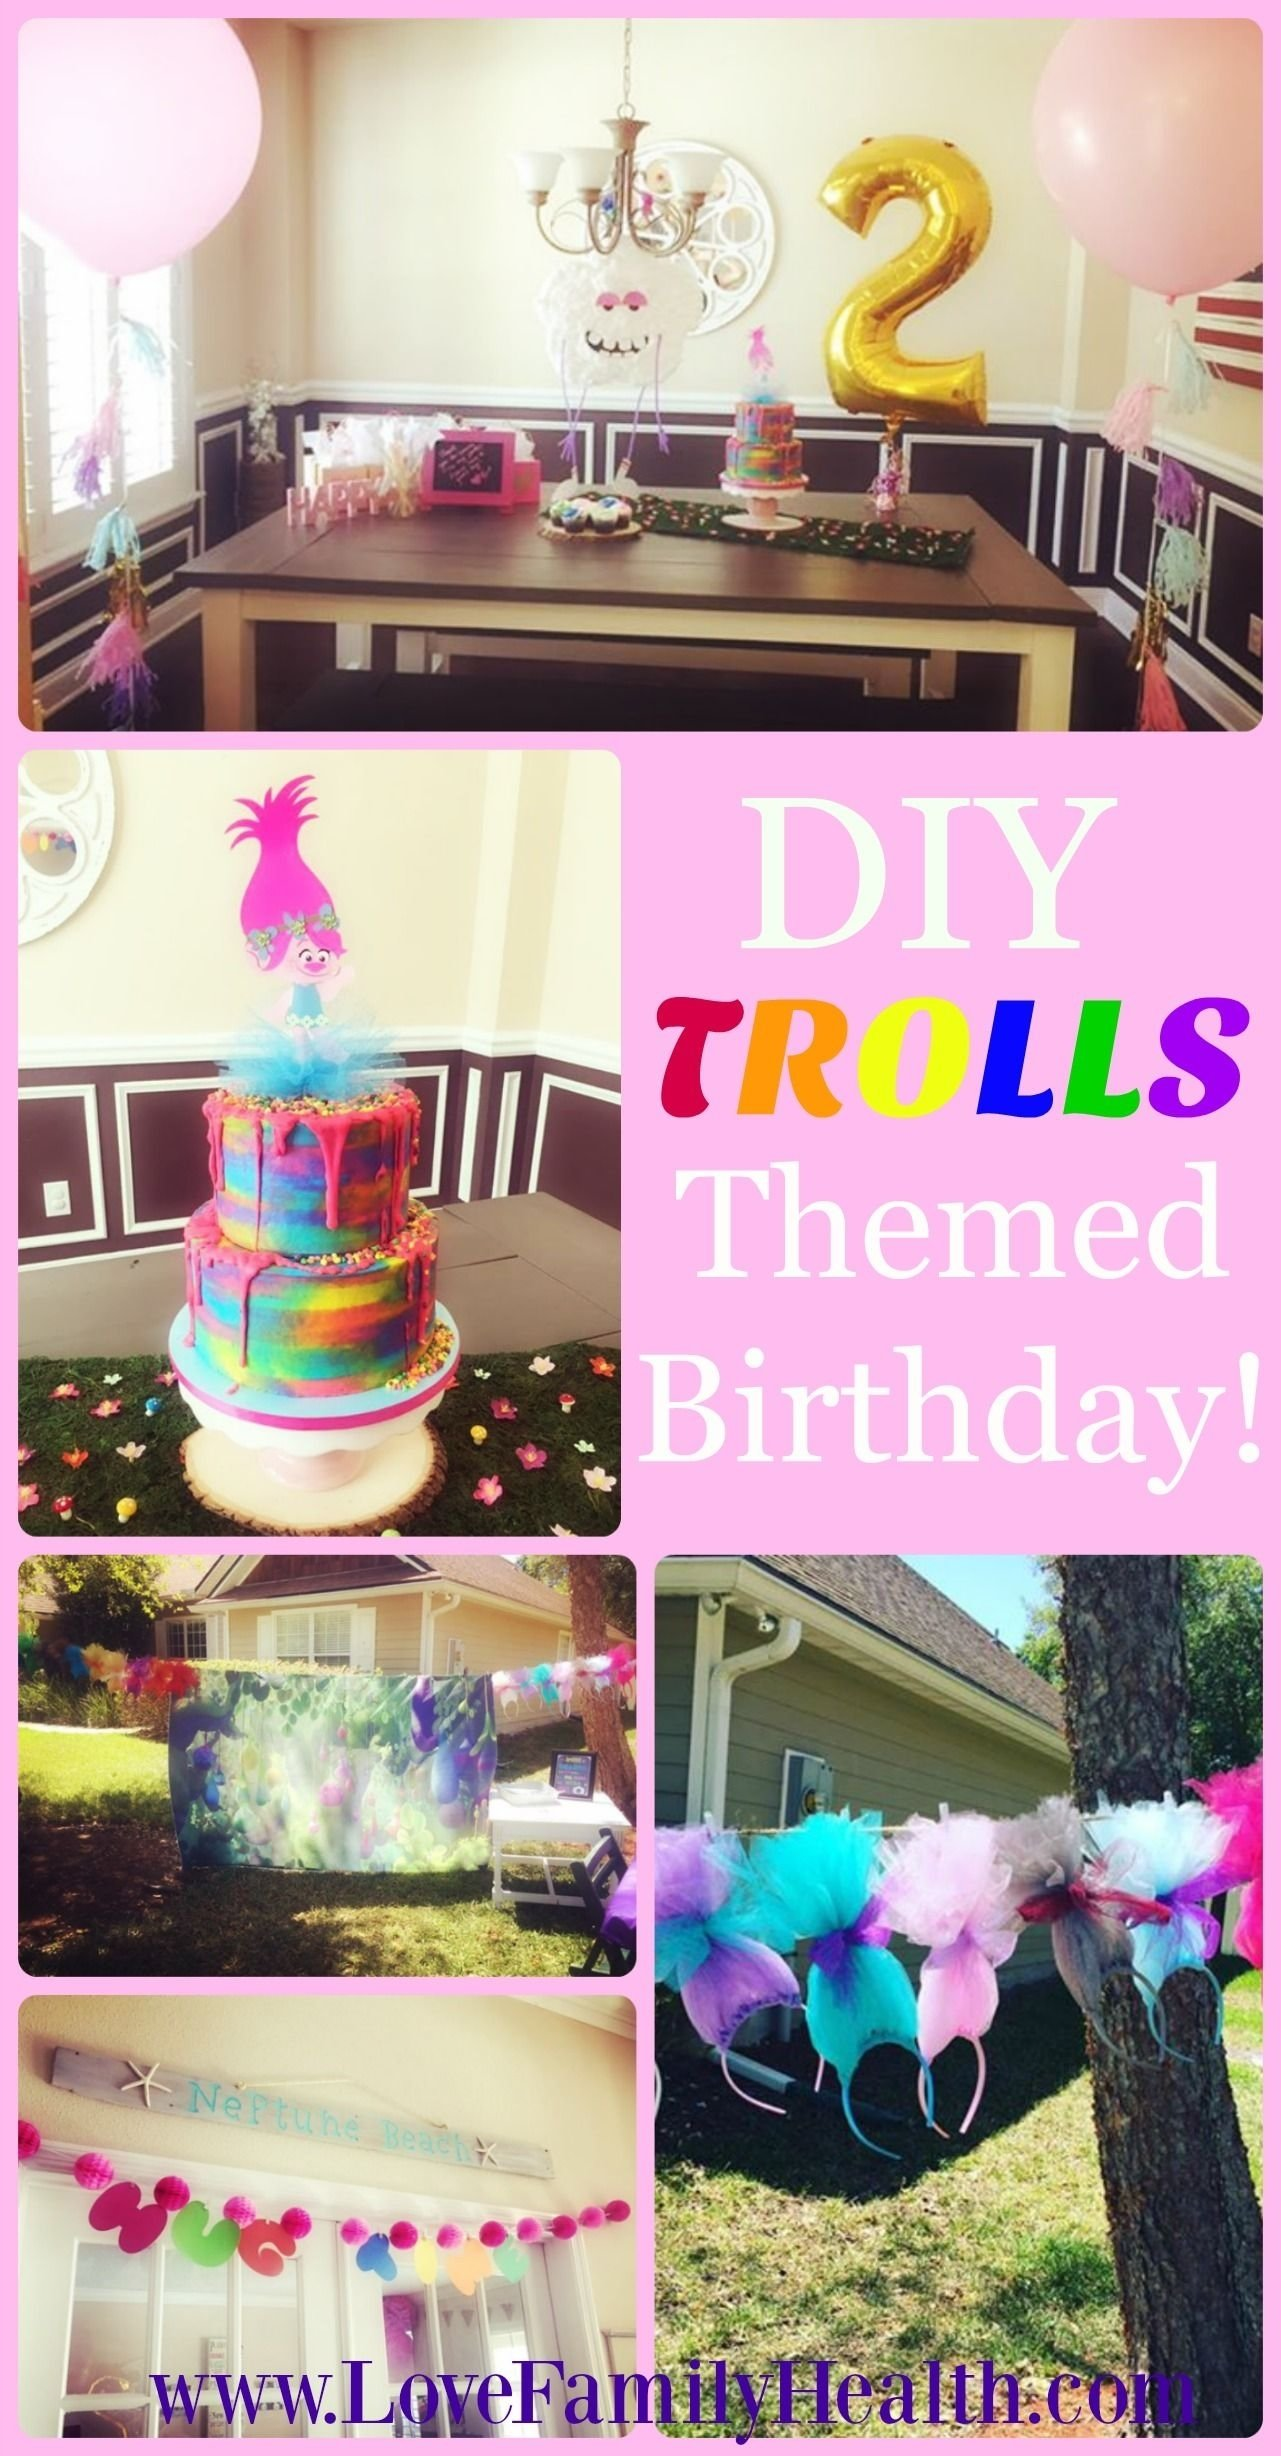 diy trolls themed 2nd birthday | girl birthday, birthday party ideas